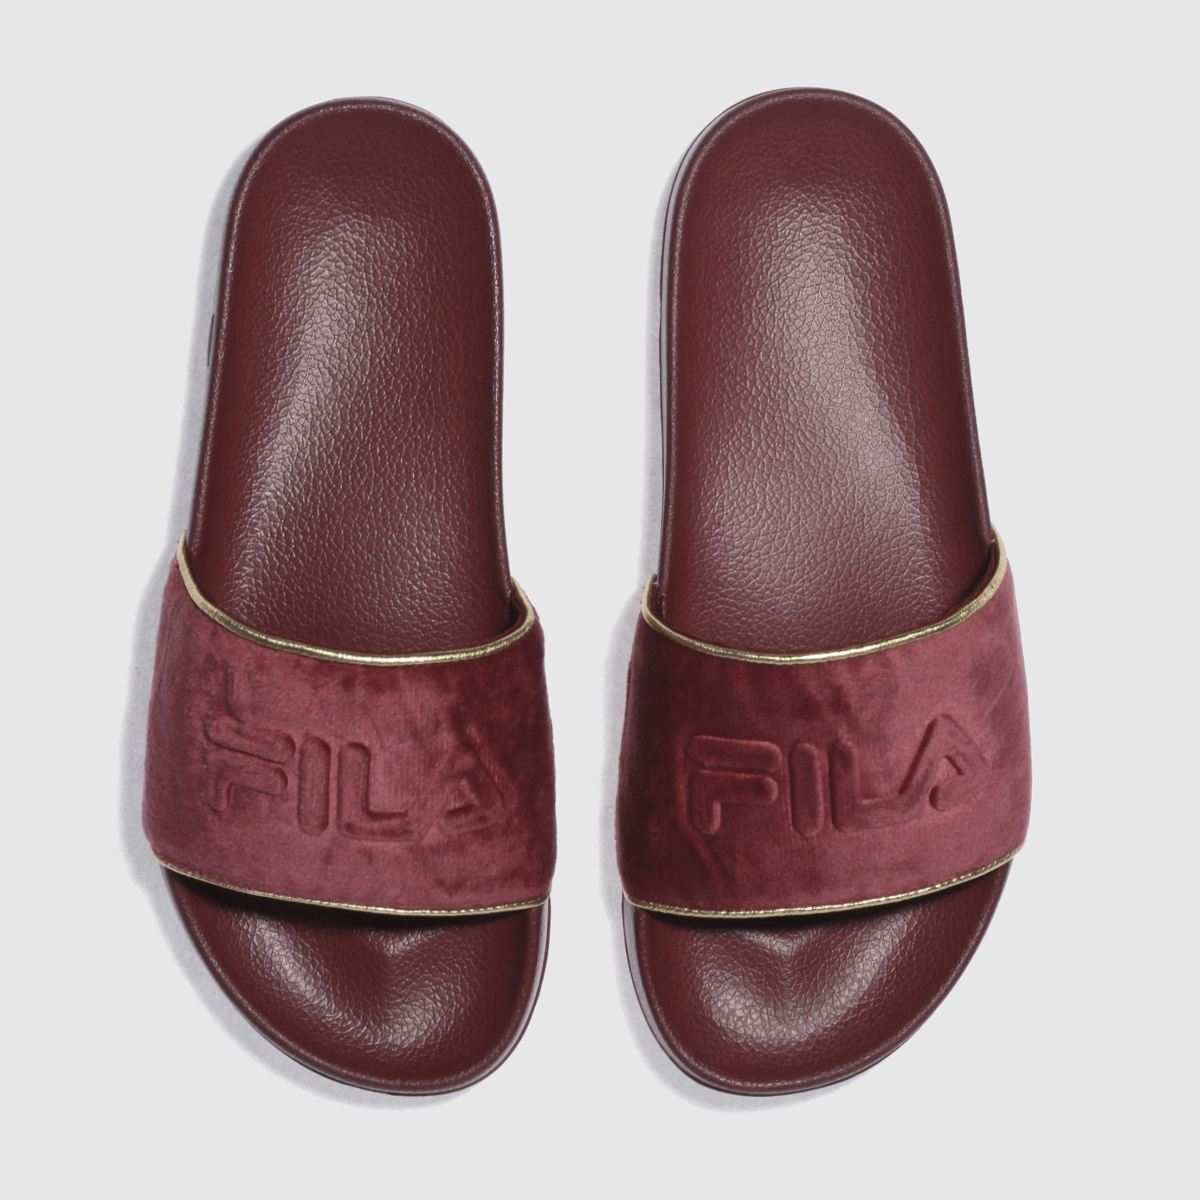 Fila Burgundy Drifter Border Velvet Sandals